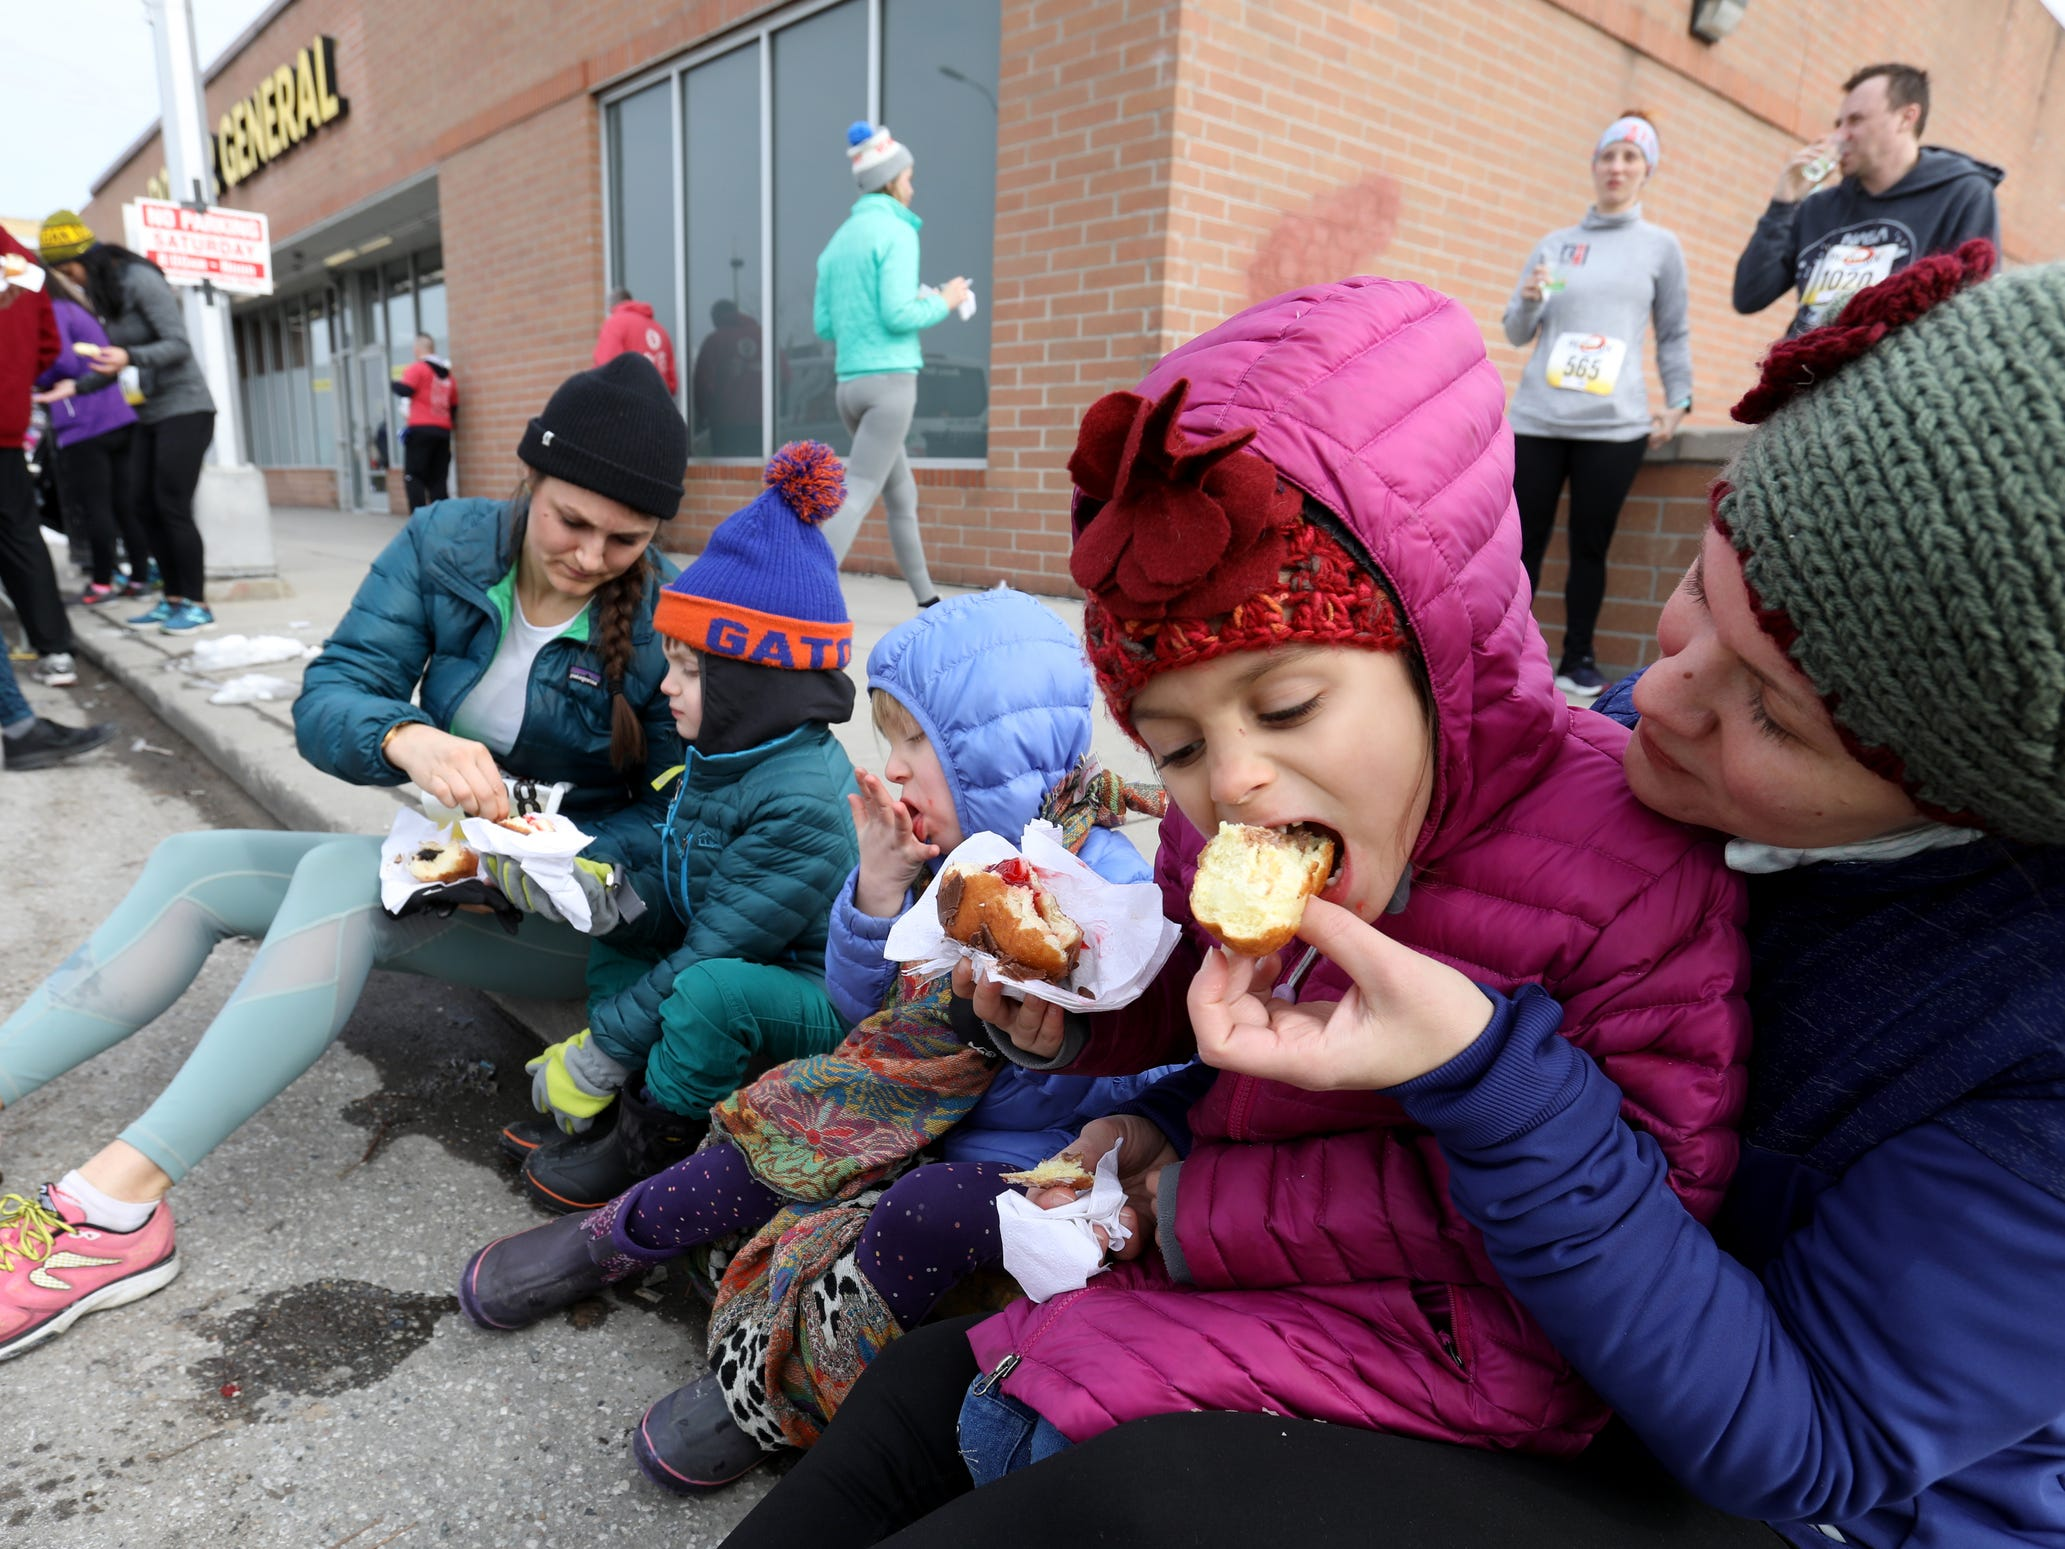 (Far right) Jennifer DeMarco, 34 of Royal Oak lets her daughter Isabella DeMarco, 6 try her Paczki after her mother had finished running the 2019 Paczki 5K run in Hamtramck on Saturday, March 2, 2019.